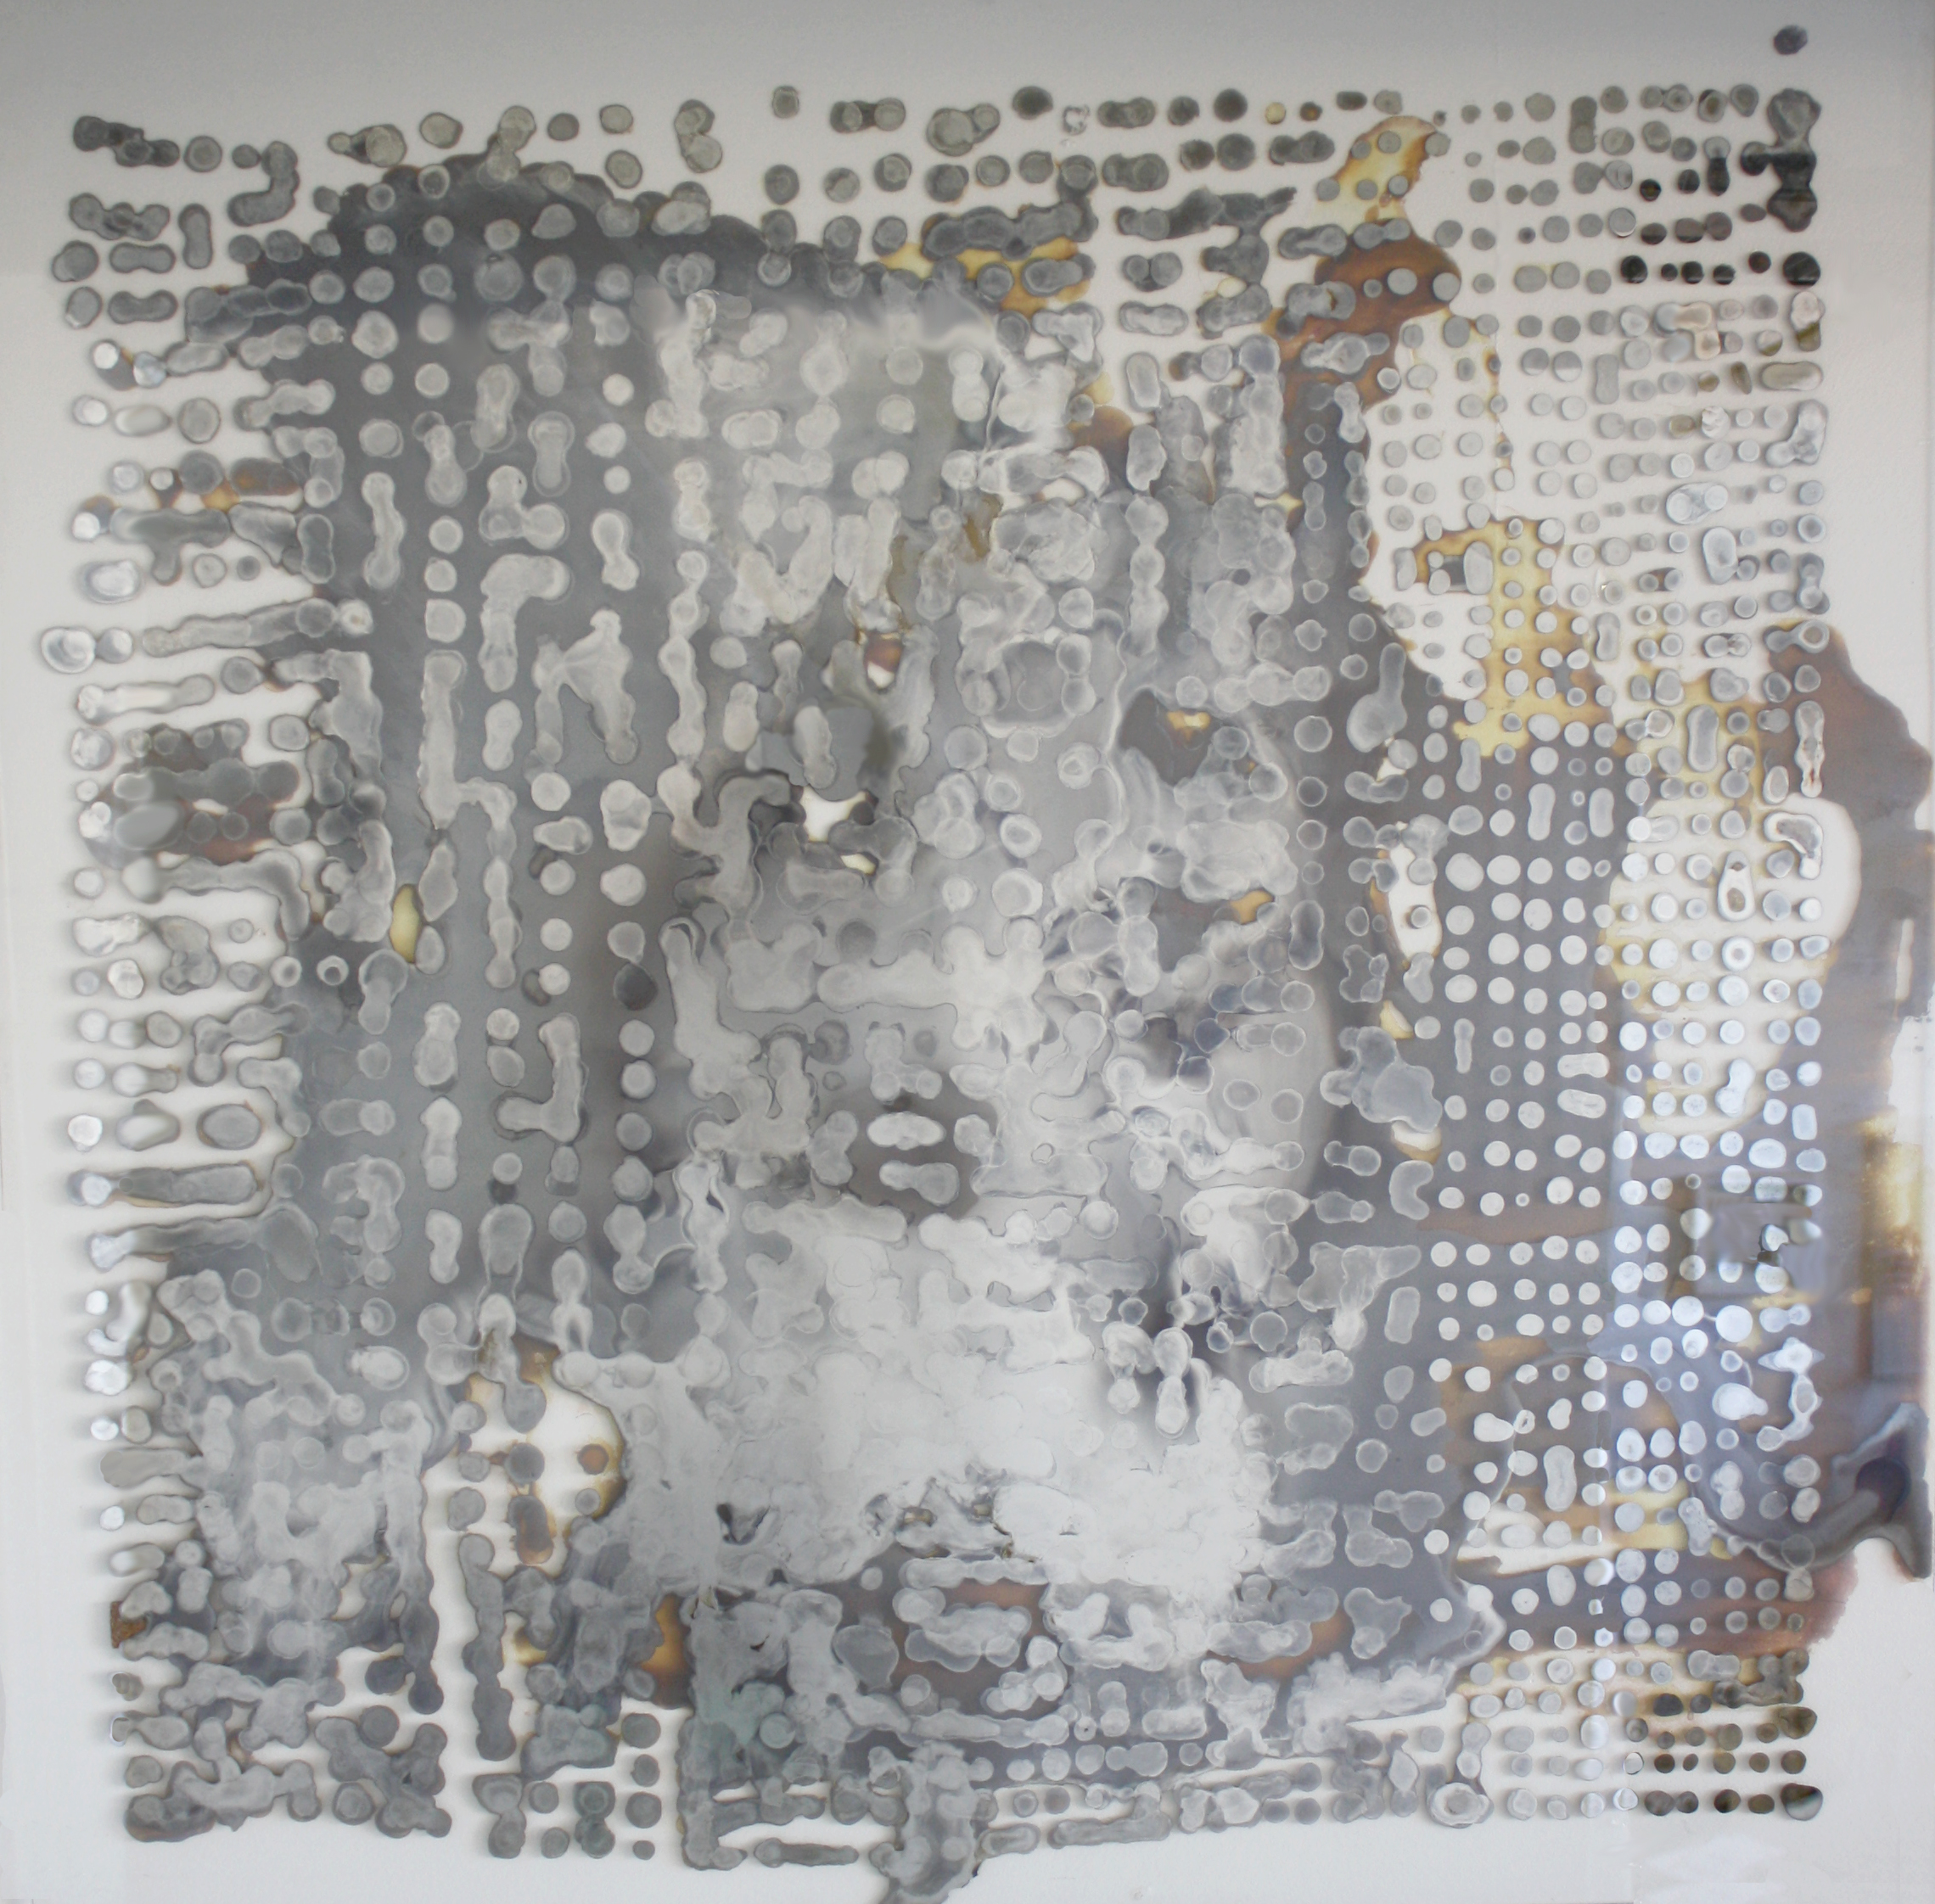 """""""Repeated forms: study no. 08""""   Laura Sallade    2015    Silver nitrate on glass    32"""" x 32"""""""